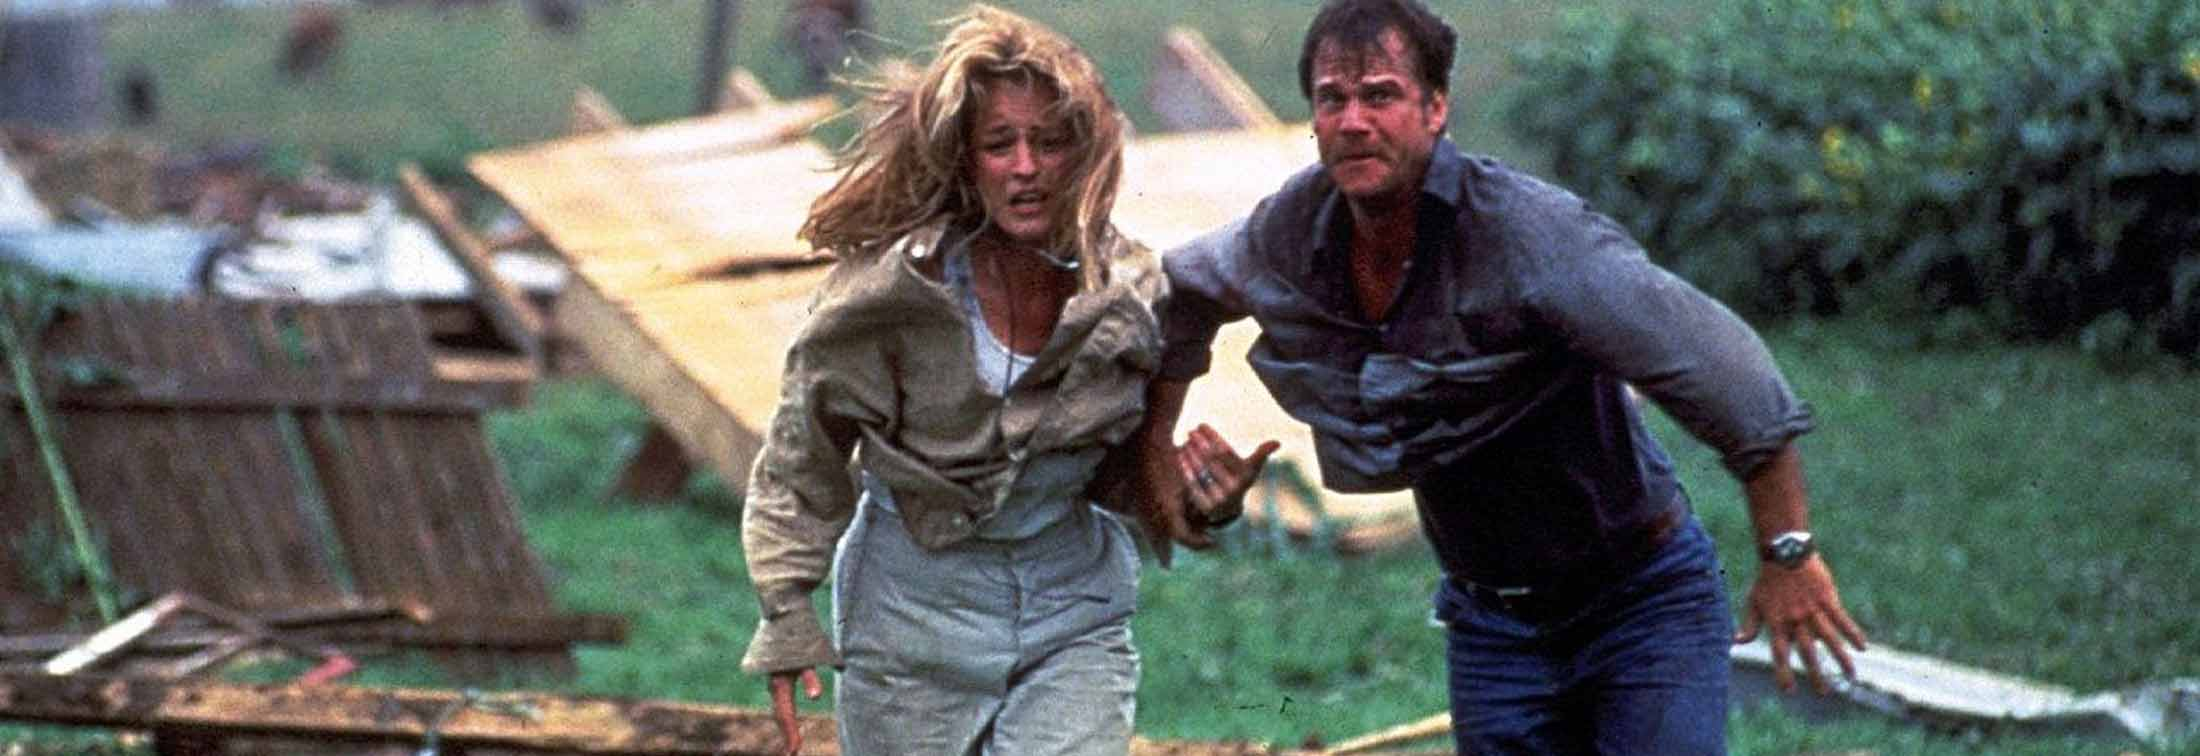 Twister - Paving the way for disaster films for 25 years